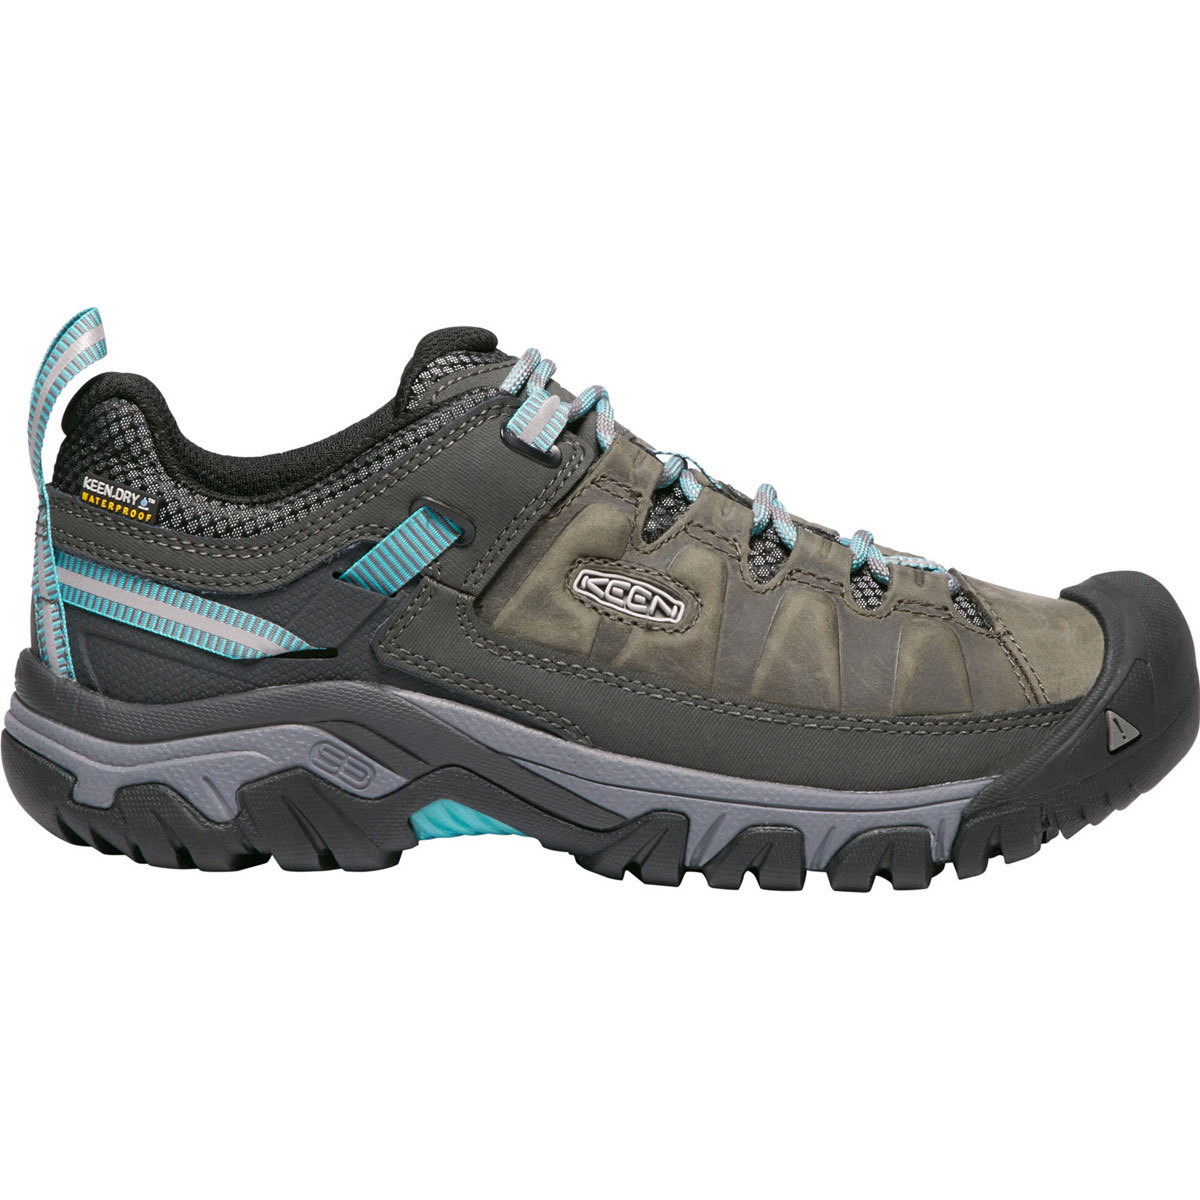 Keen Women's Targhee Iii Waterproof Low Hiking Shoes - Black, 8